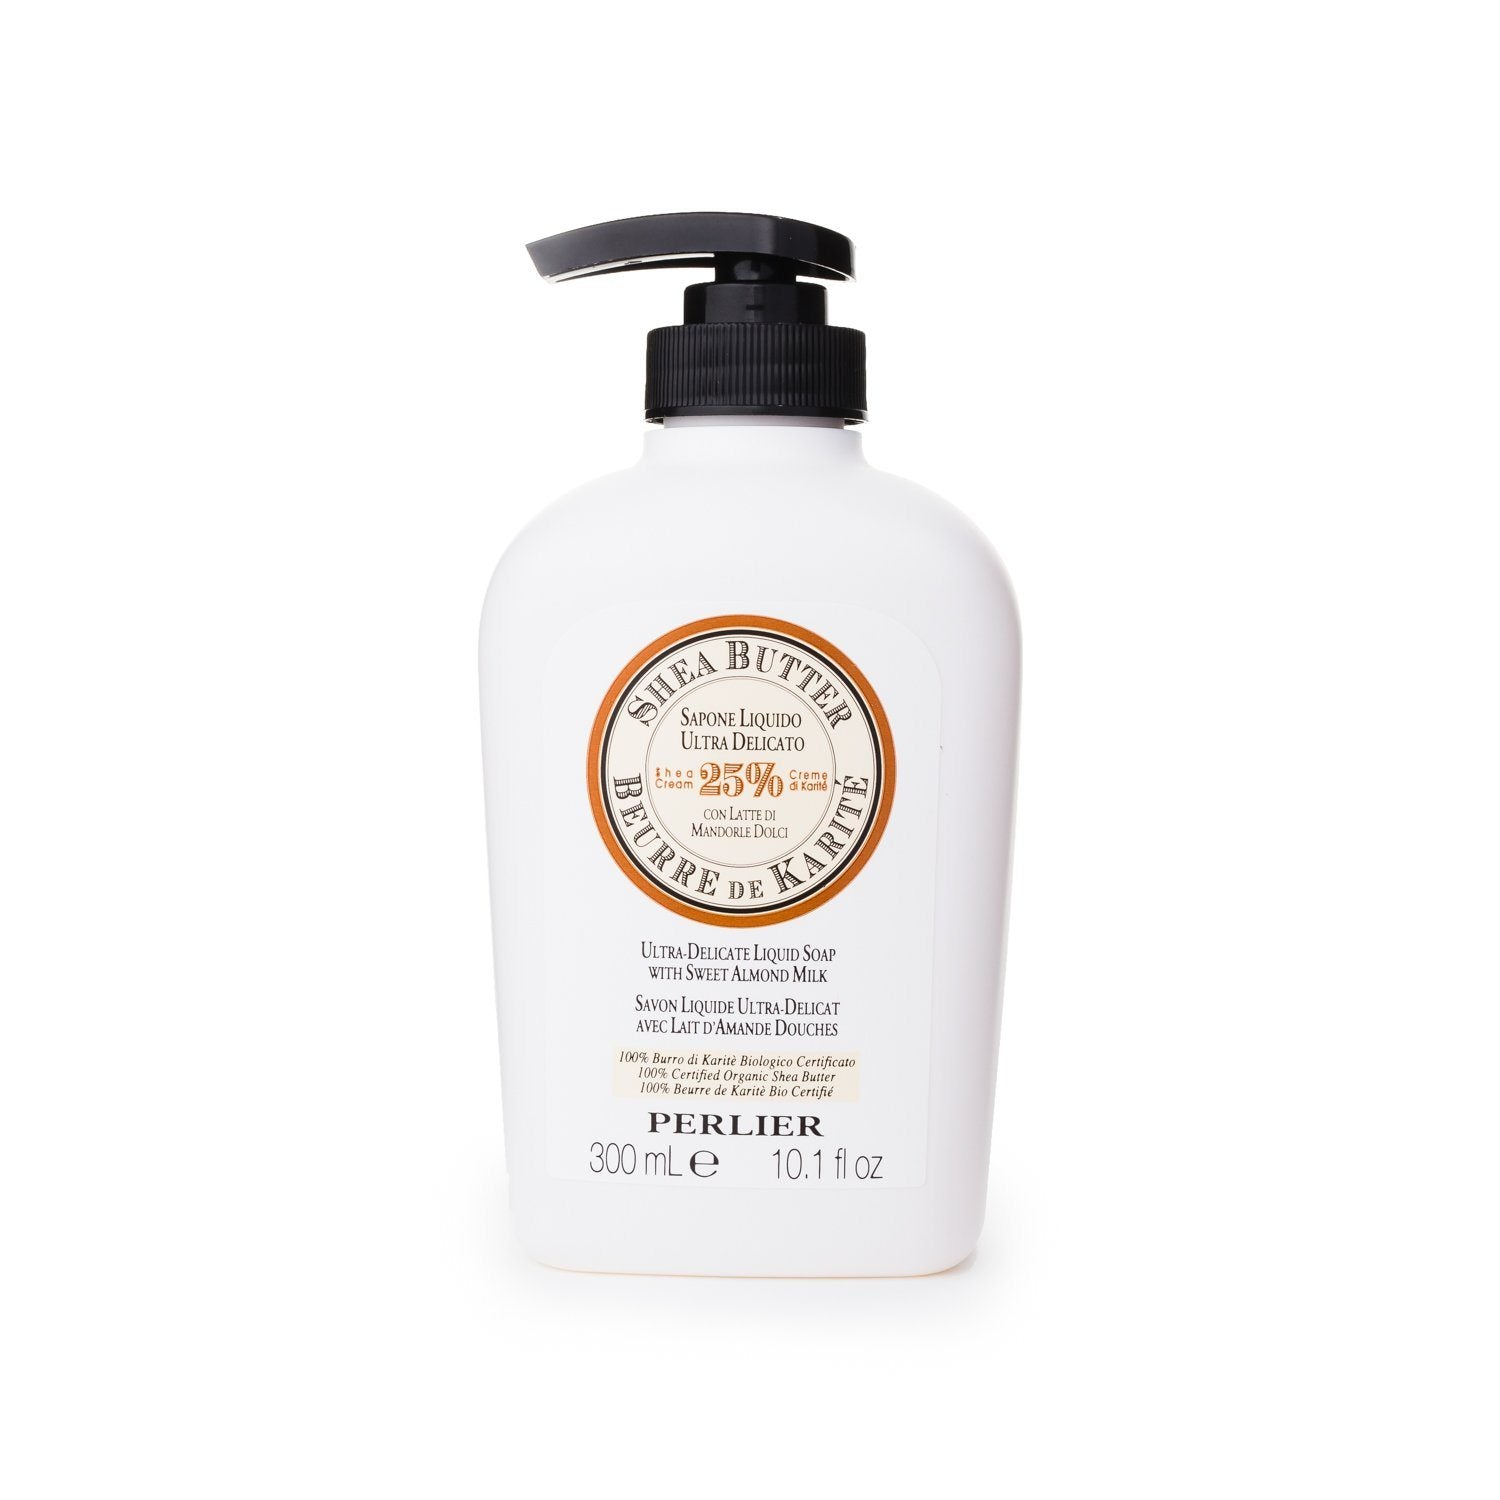 Shea Butter with Sweet Almond Liquid Soap 10.1 fl oz